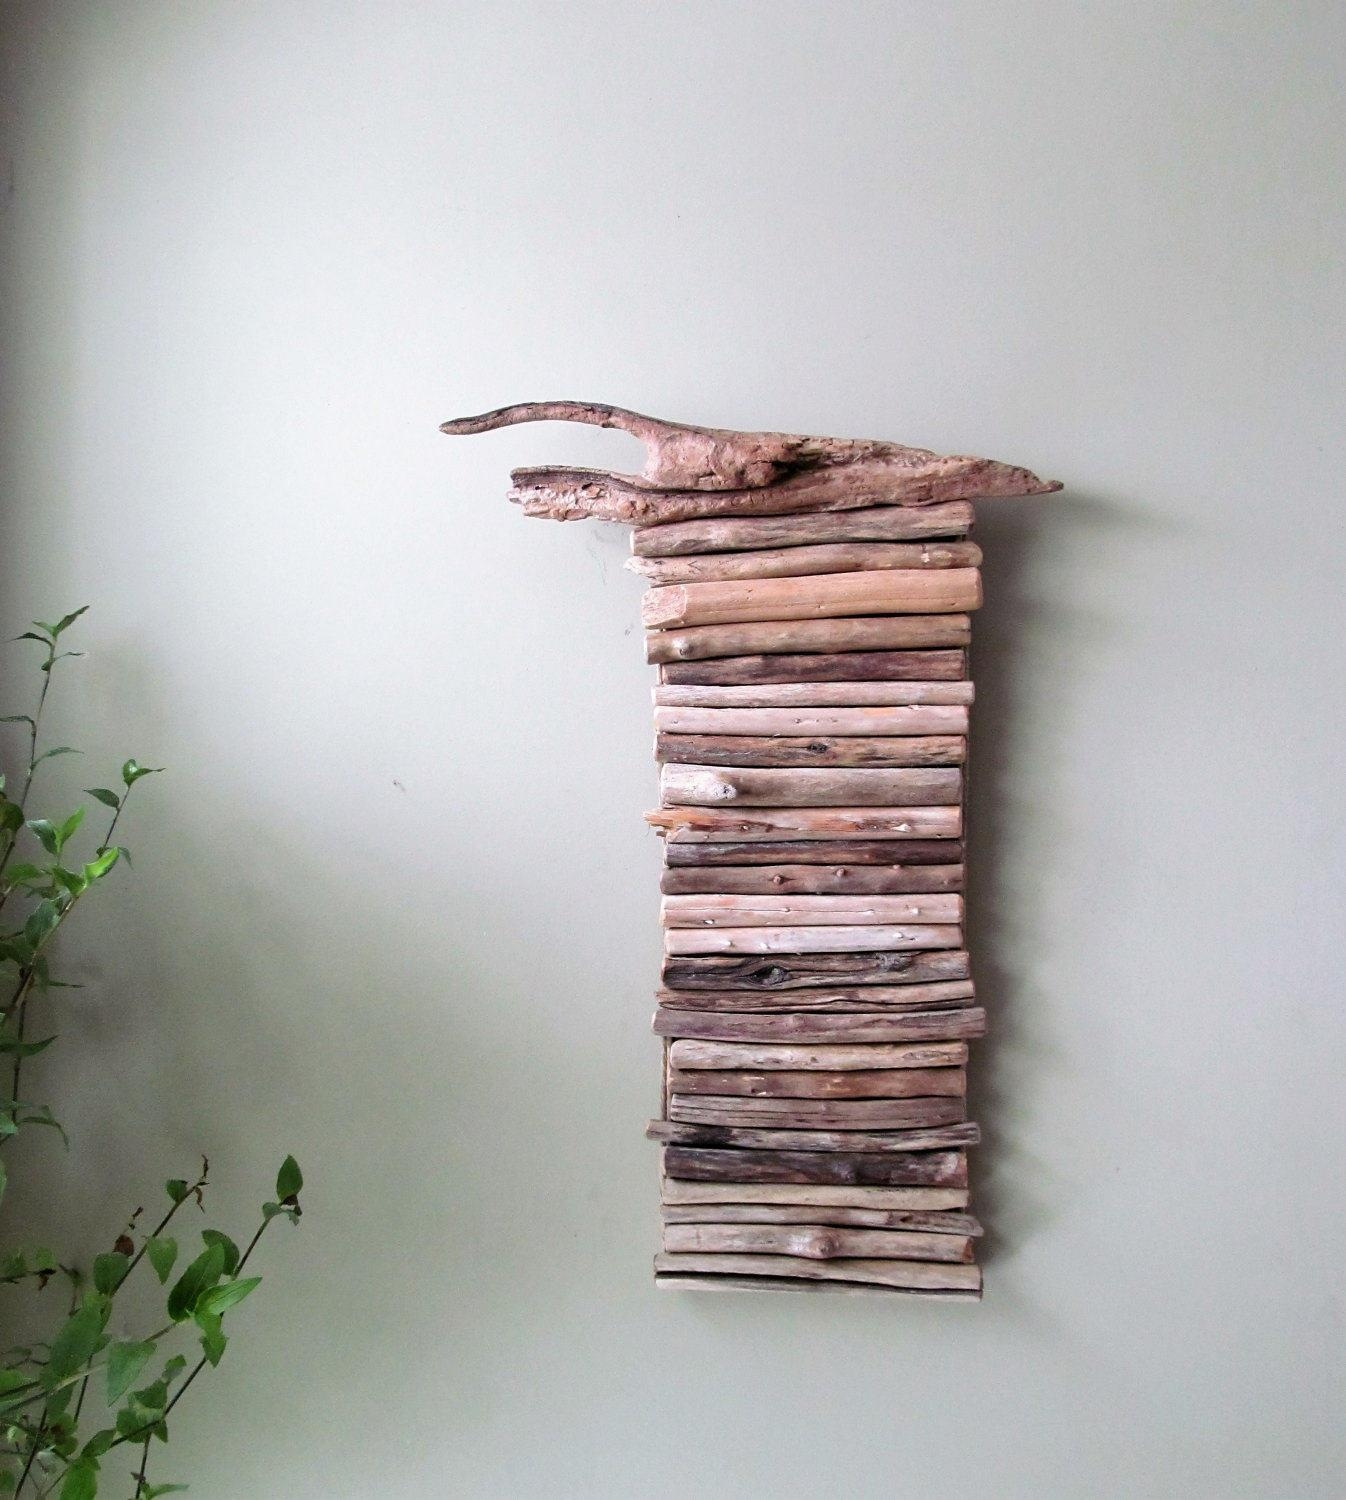 Creating Nice And Smart Ideas Of Driftwood Wall Art – Theydesign With Regard To Driftwood Wall Art (Image 2 of 20)